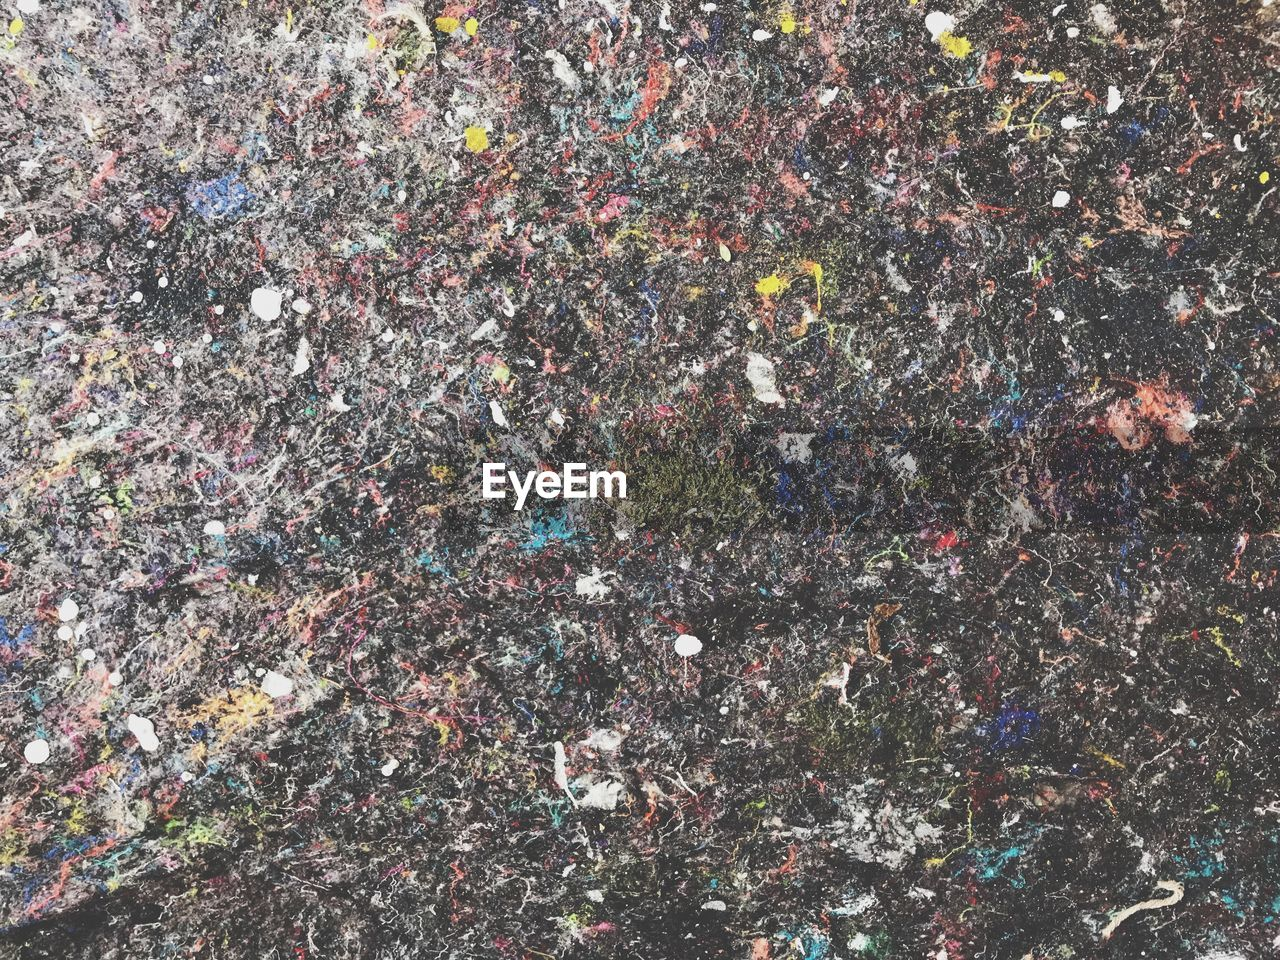 full frame, backgrounds, multi colored, high angle view, no people, day, outdoors, textured, pattern, nature, close-up, directly above, celebration, environment, paper, city, messy, confetti, rough, pollution